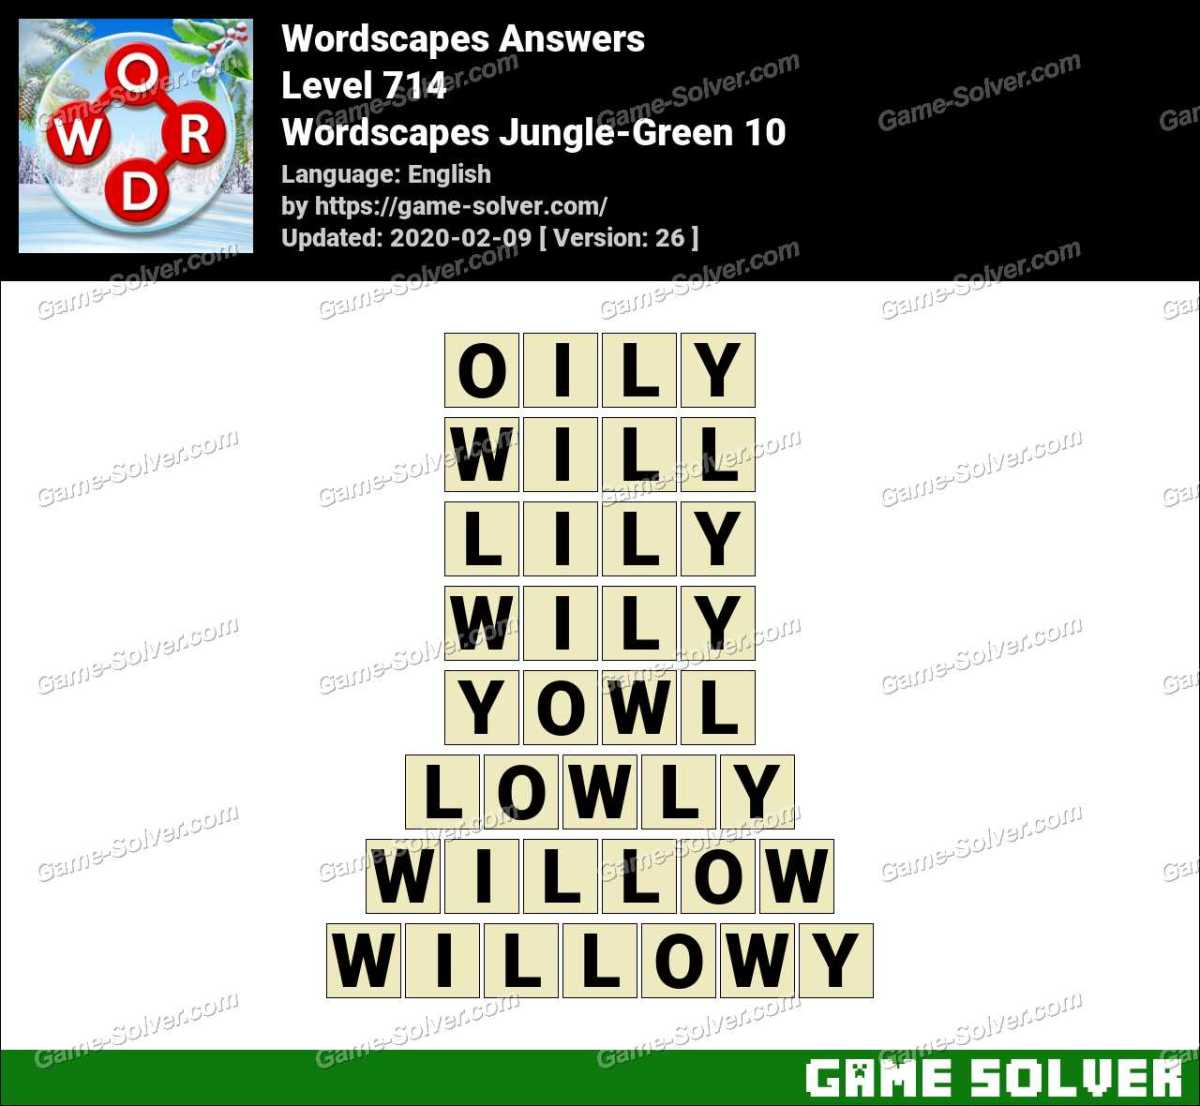 Wordscapes Jungle-Green 10 Answers